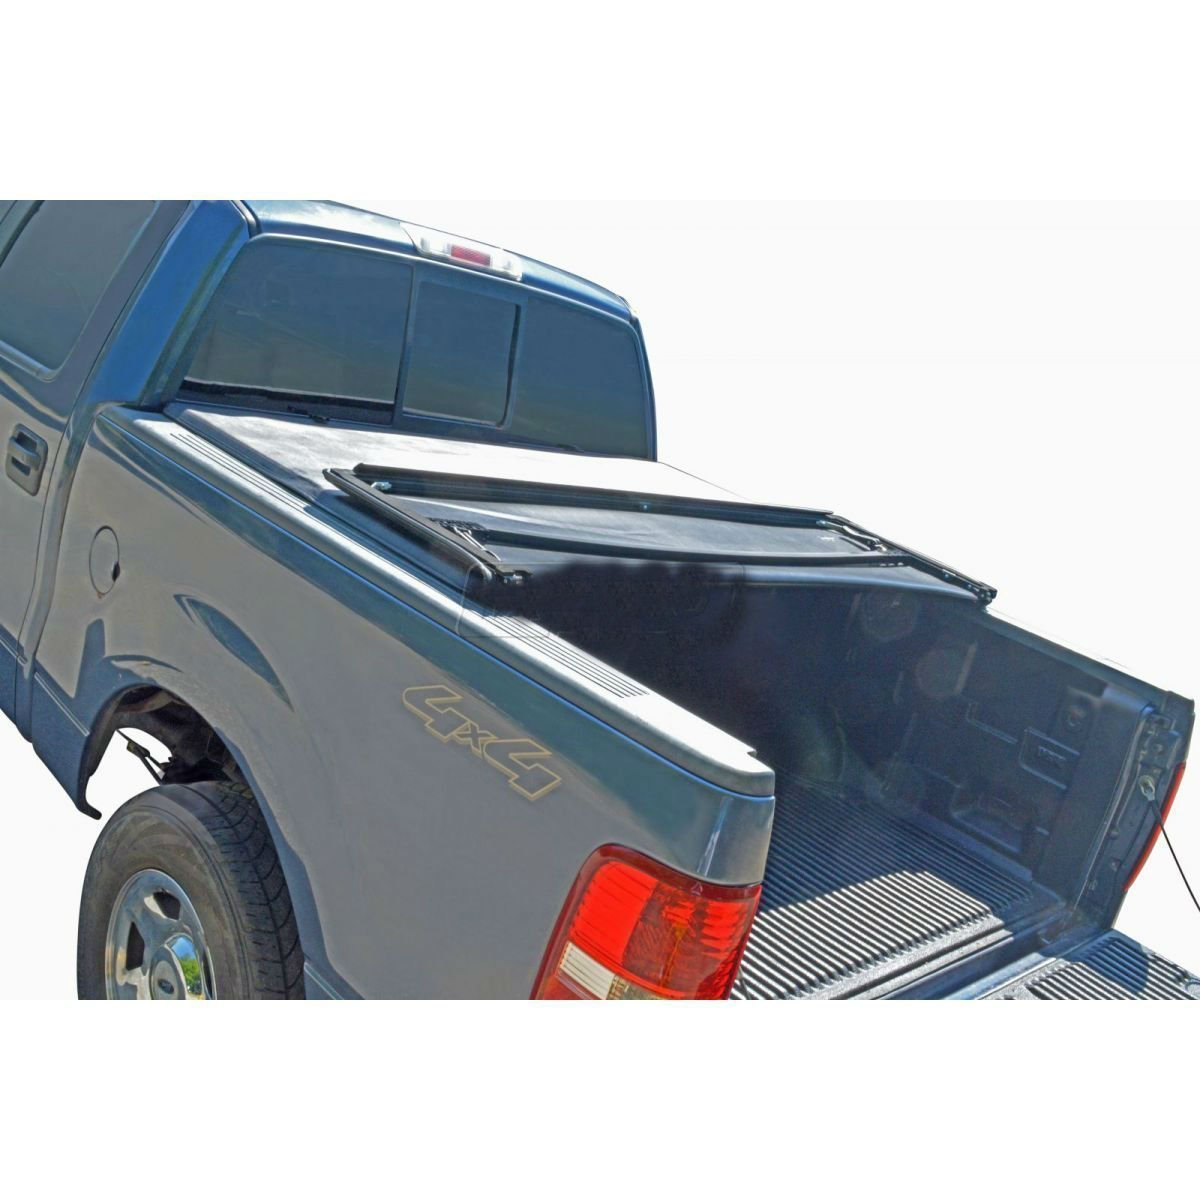 Fits-Tonneau Cover Soft Tri Fold for Toyota Tacoma Pickup Truck 6ft Short Bed